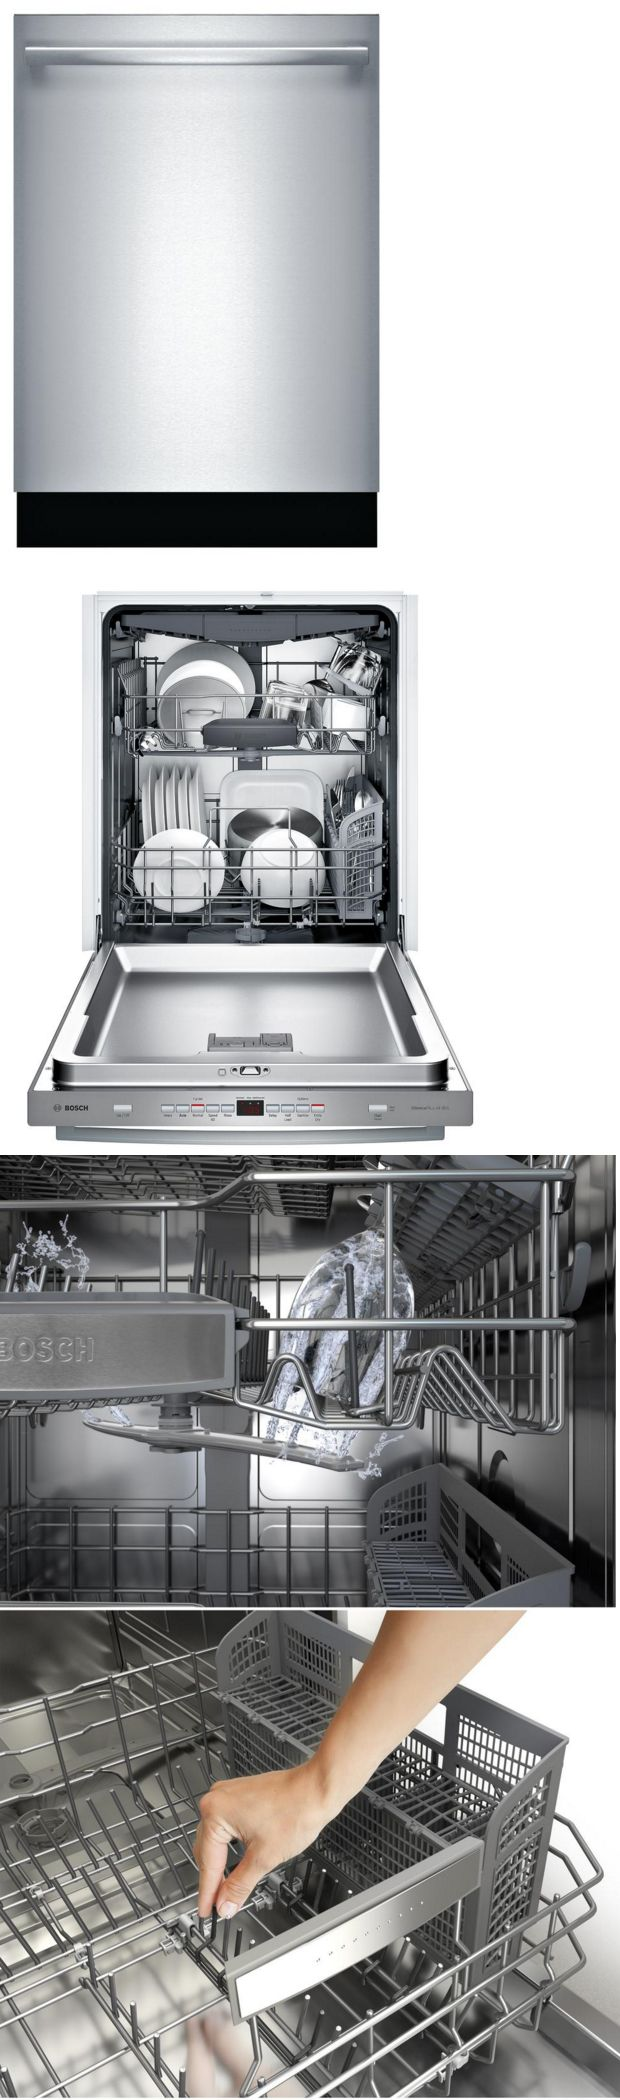 Dishwashers 116023 Bosch Shxm63w55n 300 Series 24 Inch Built In Fully Integrated Dishwasher New Buy It Now Fully Integrated Dishwasher Bosch Dishwasher